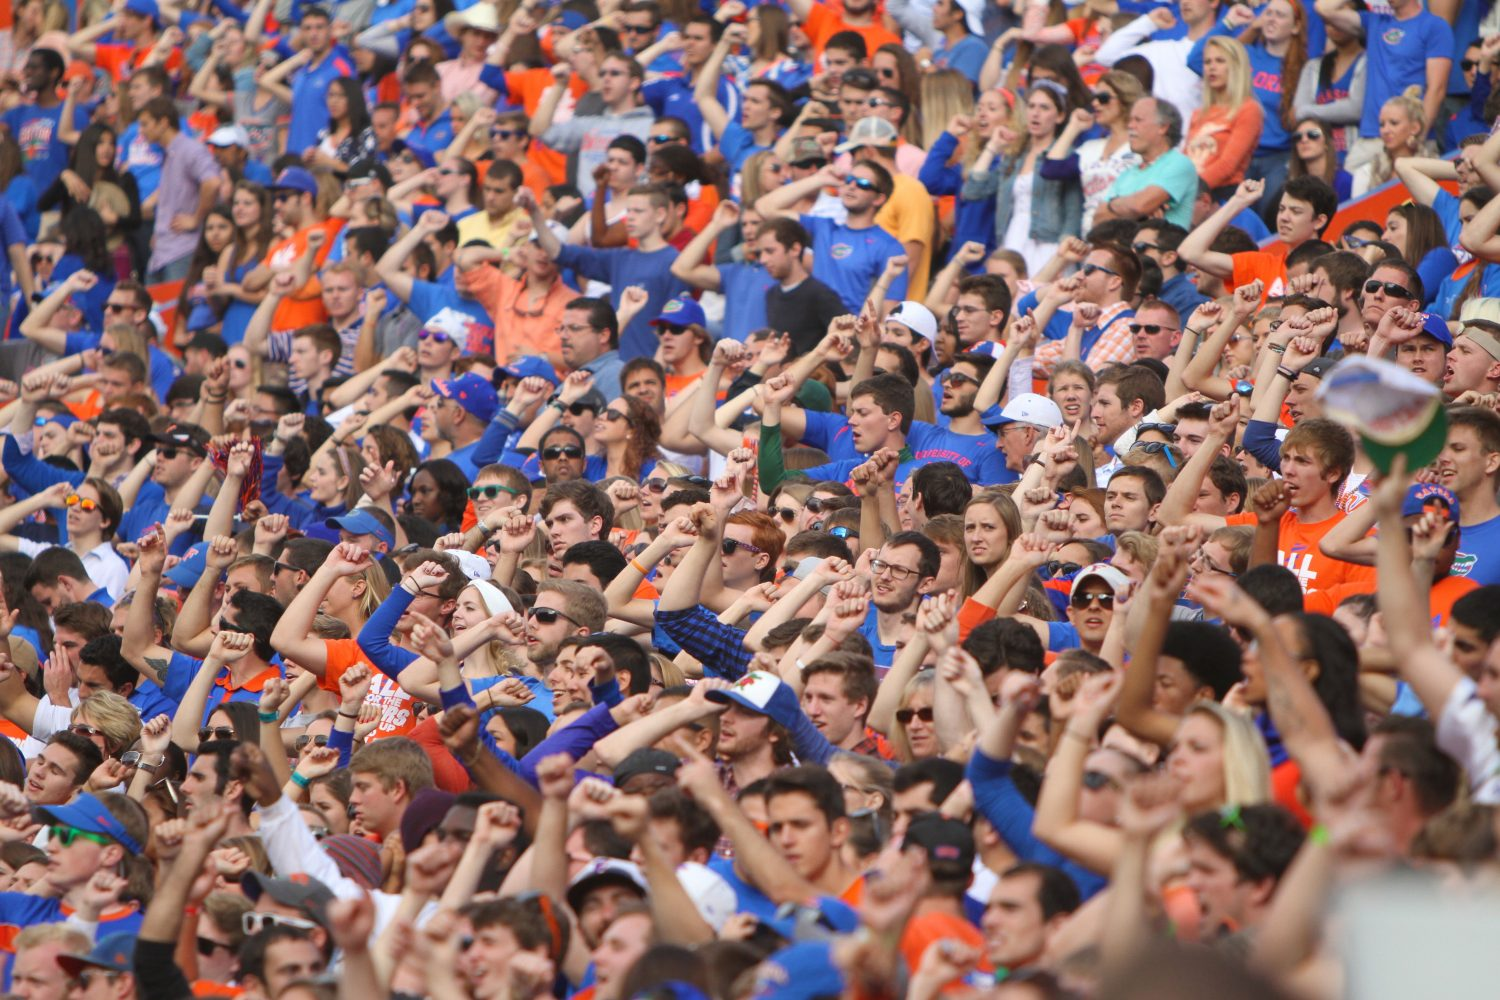 With the score all tied up at 10-10 in the third quarter, the Rowdy Reptiles make some noise.